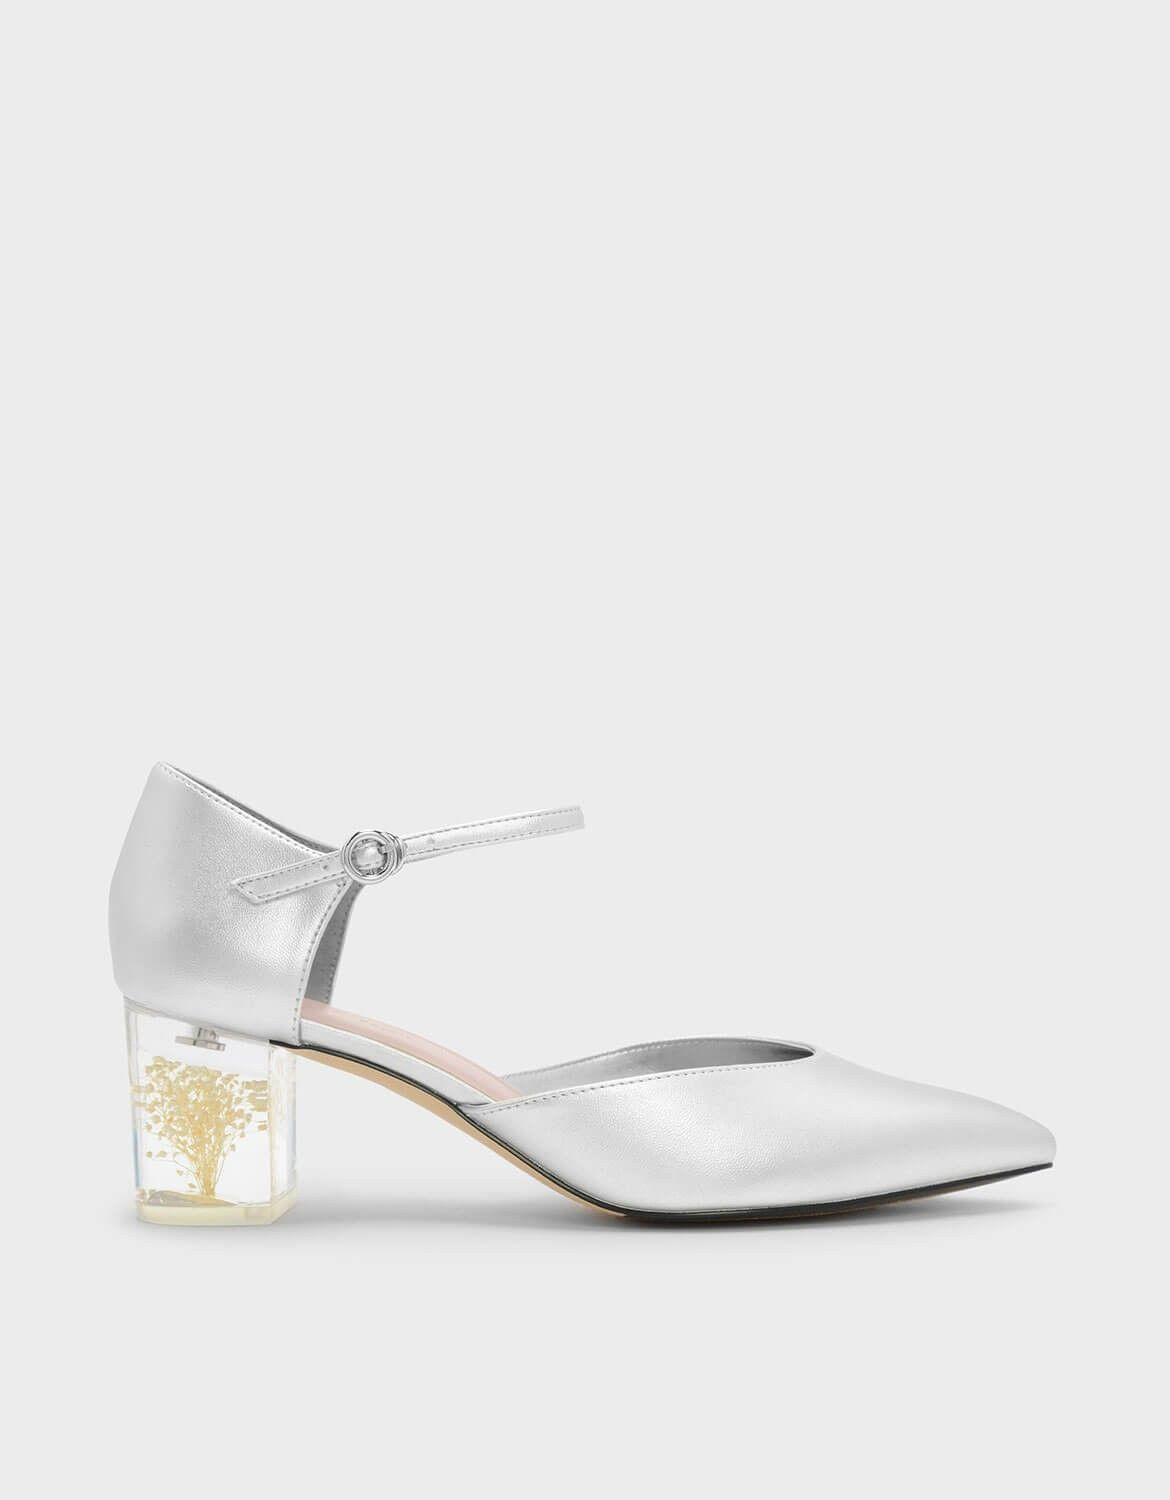 bee2e8241041 CHARLES   KEITH - Shoes. Silver pointed heels featuring a Mary Jane strap  and a